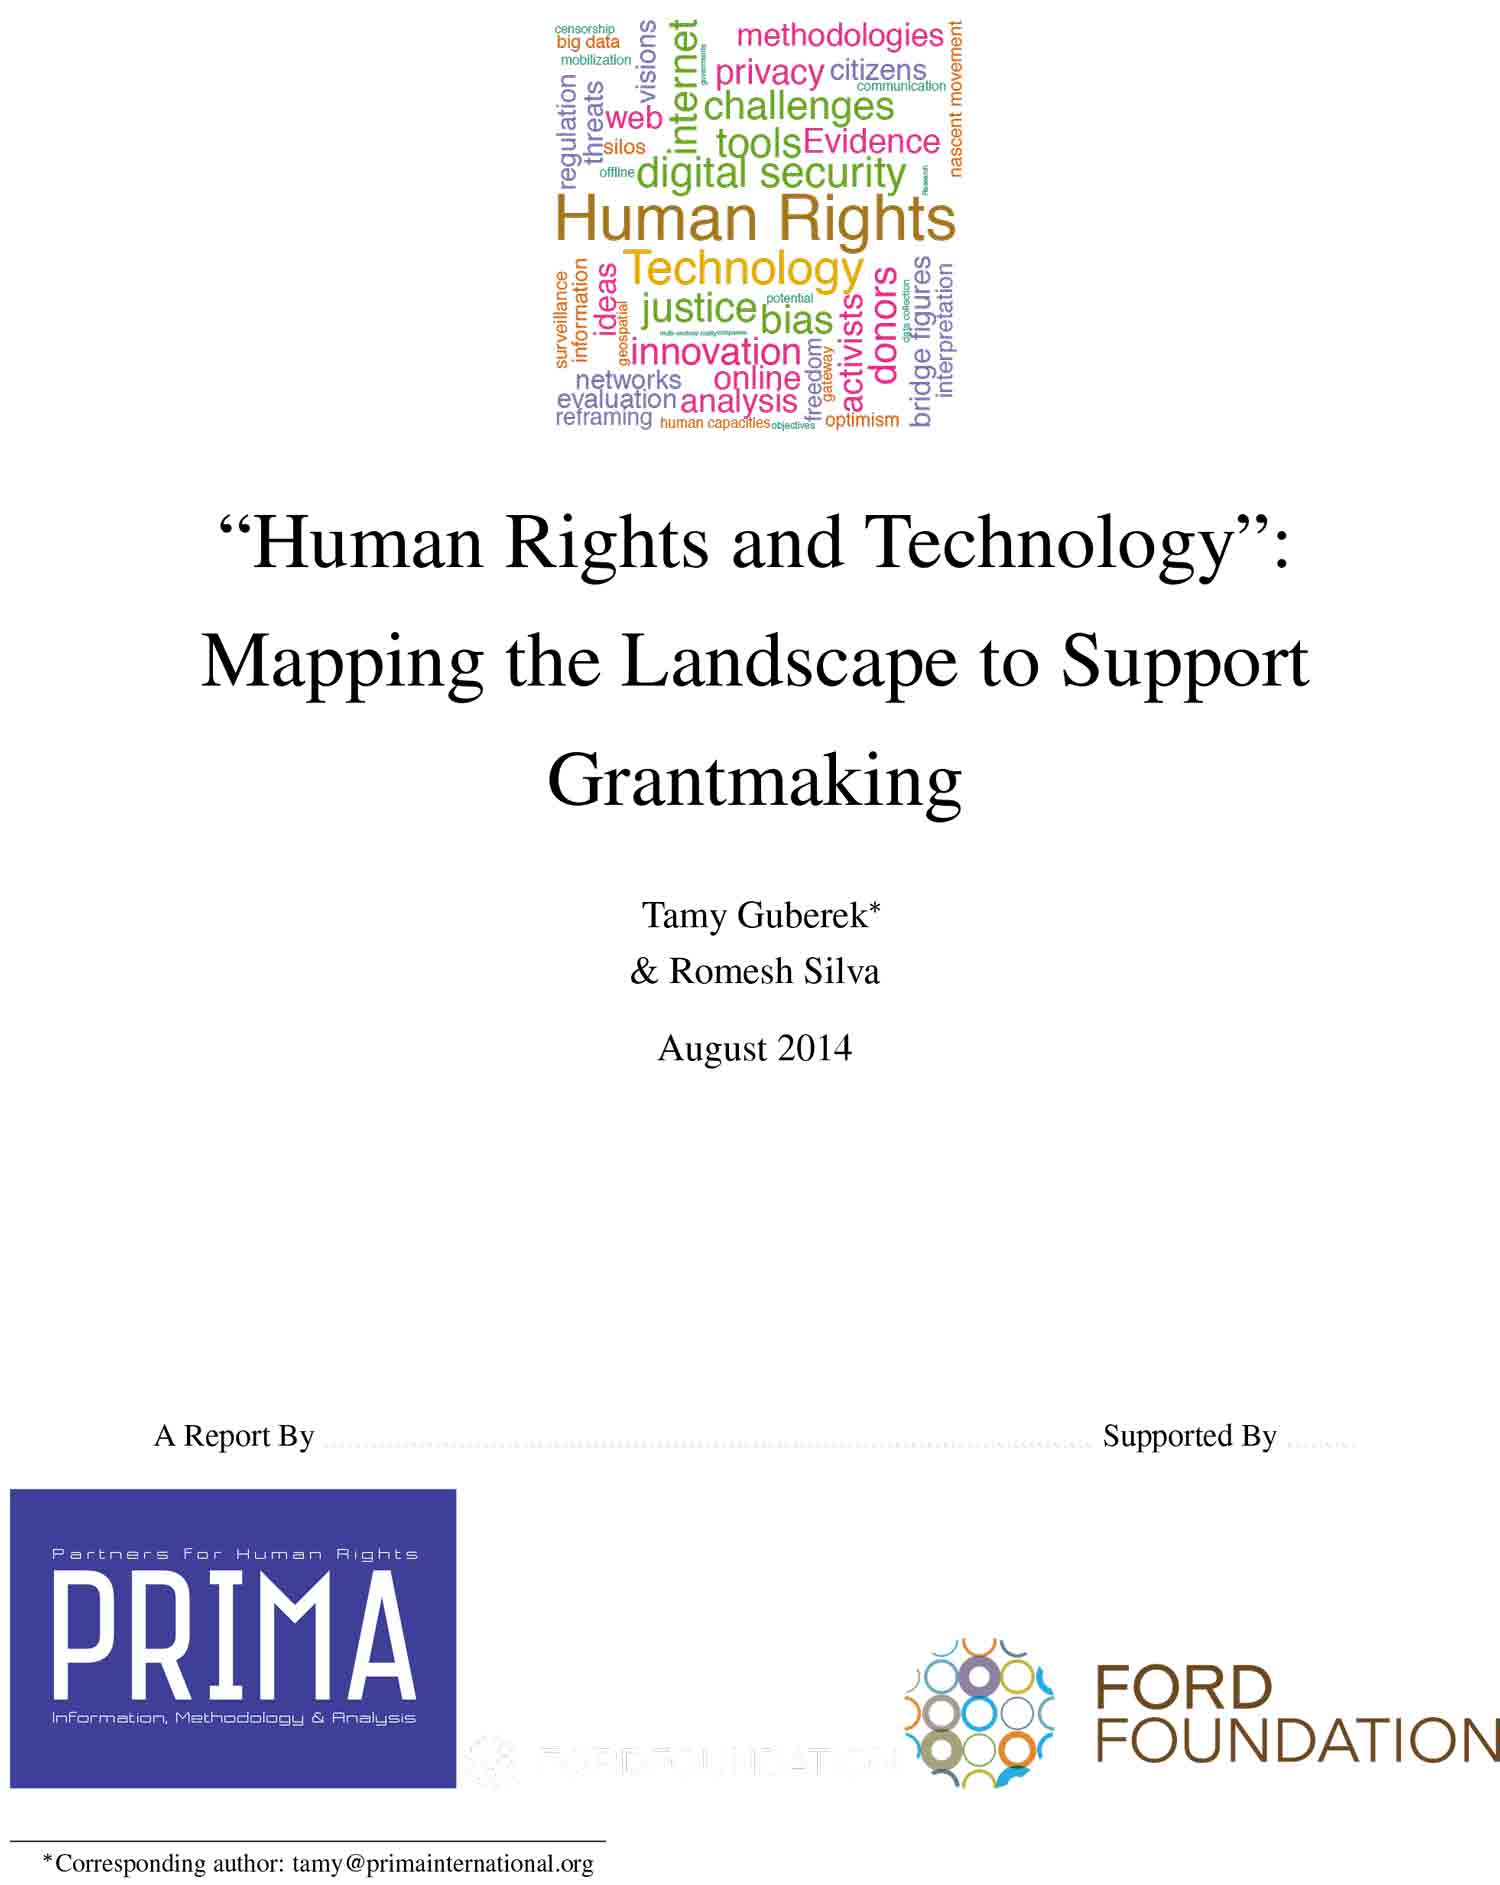 Human Rights and Technology: Mapping the Landscape to Support Grantmaking